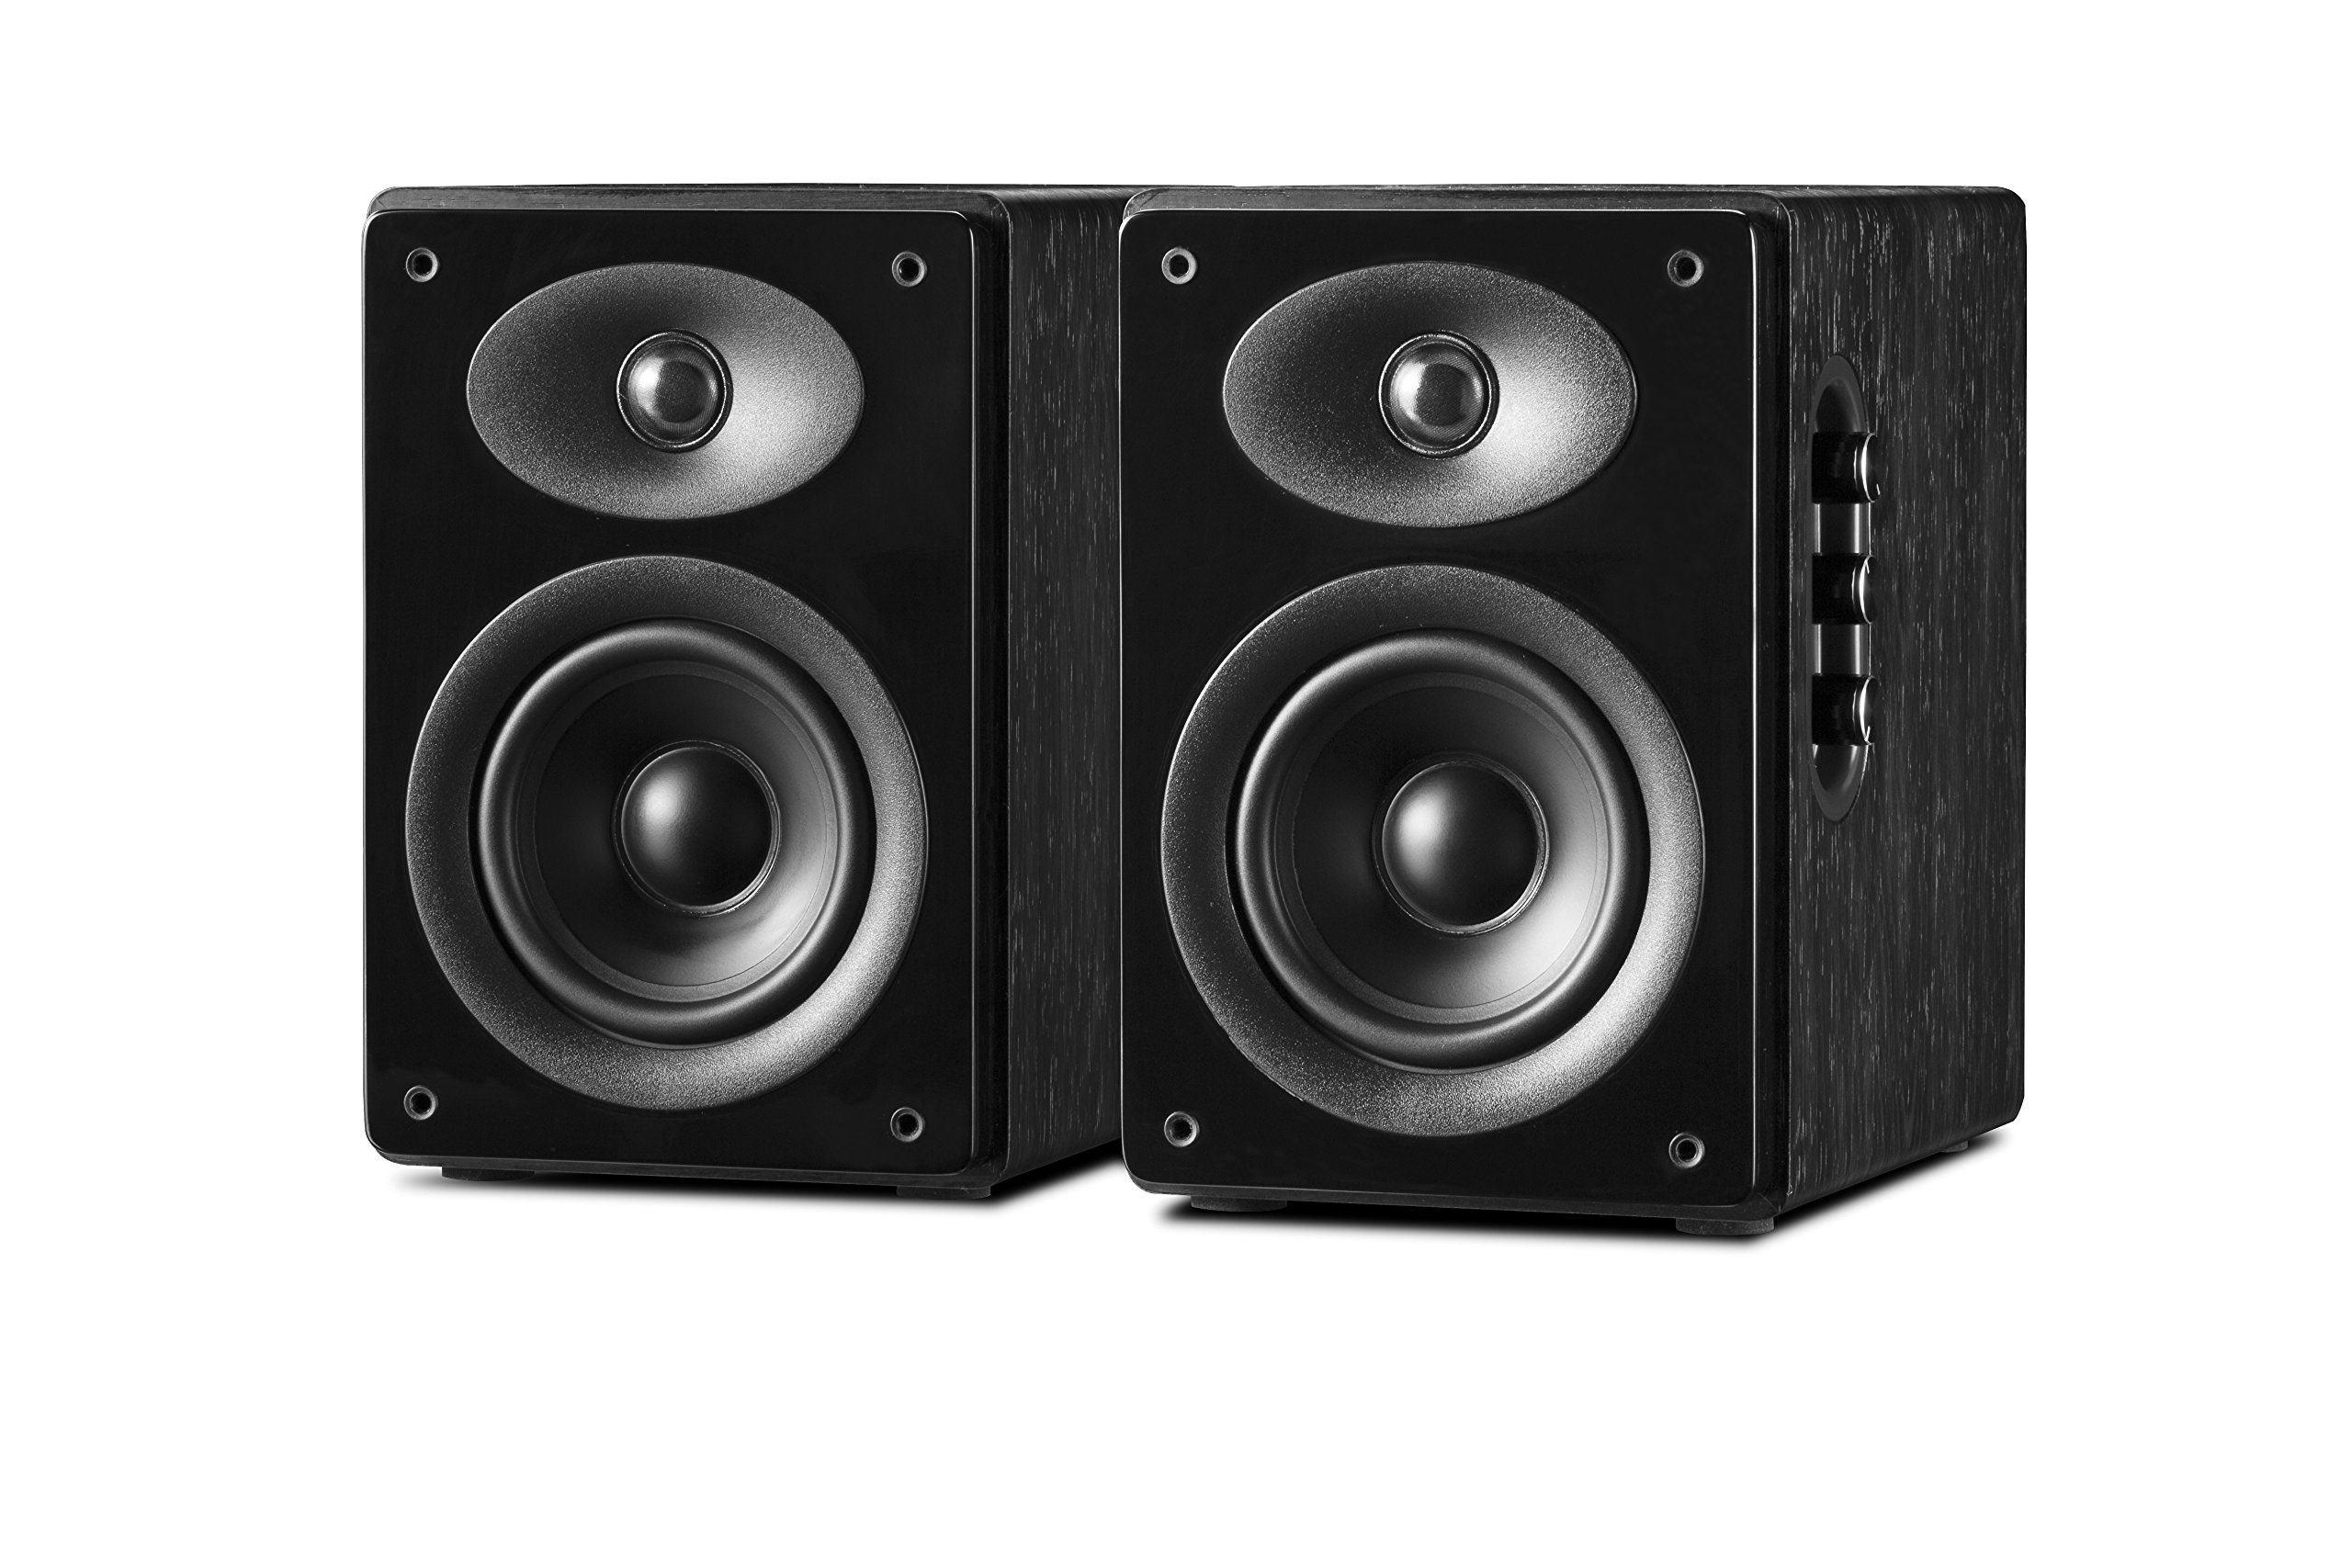 Swan Speakers - D1080MKII - Powered 2.0 Bookshelf Speakers - Full Rosewood Cabinet - High Fidelity Sound - Near-Field Speakers - 5'' Mid-bass Driver & 1'' Dome Tweeter - 60W RMS